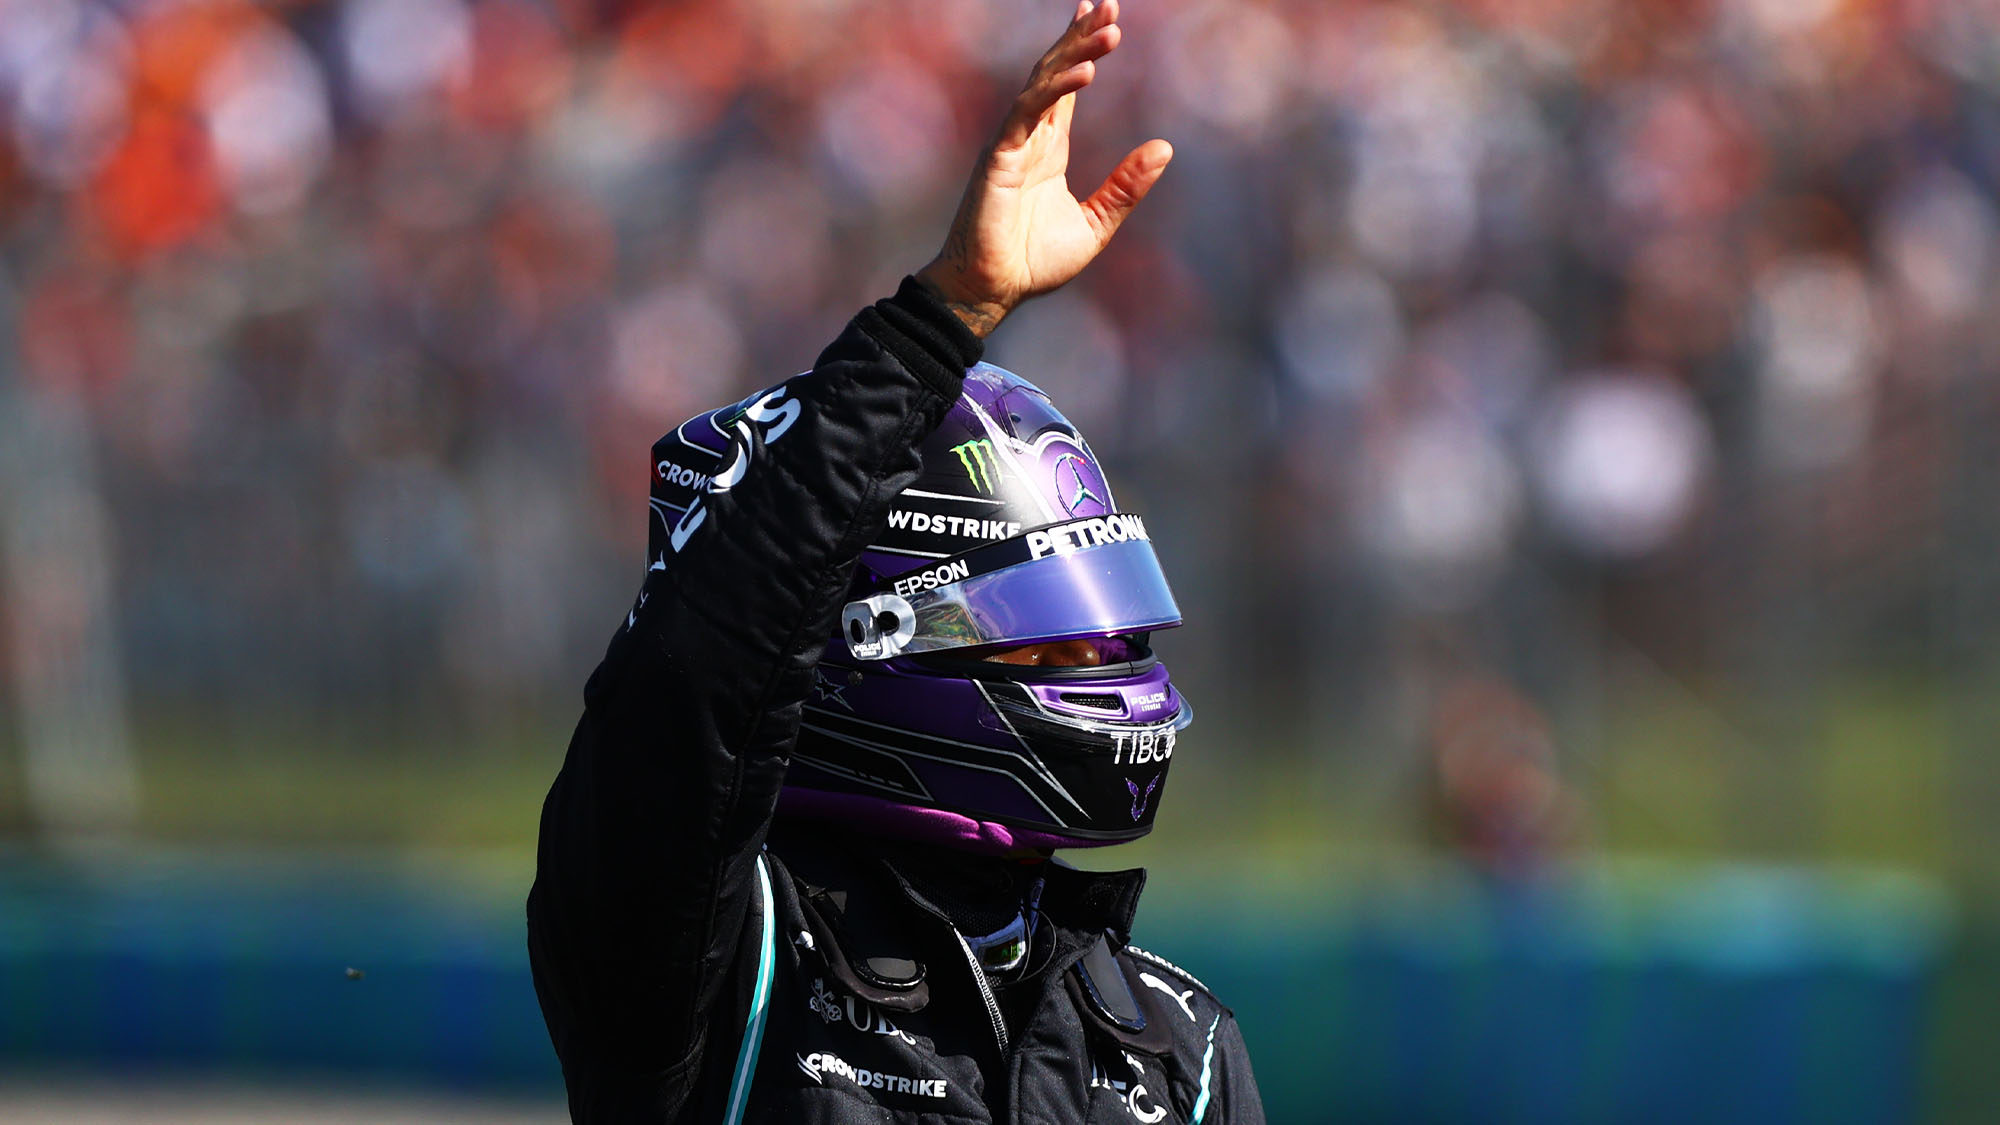 BUDAPEST, HUNGARY - JULY 31: Pole position qualifier Lewis Hamilton of Great Britain and Mercedes GP celebrates in parc ferme during qualifying ahead of the F1 Grand Prix of Hungary at Hungaroring on July 31, 2021 in Budapest, Hungary. (Photo by Dan Istitene - Formula 1/Formula 1 via Getty Images)